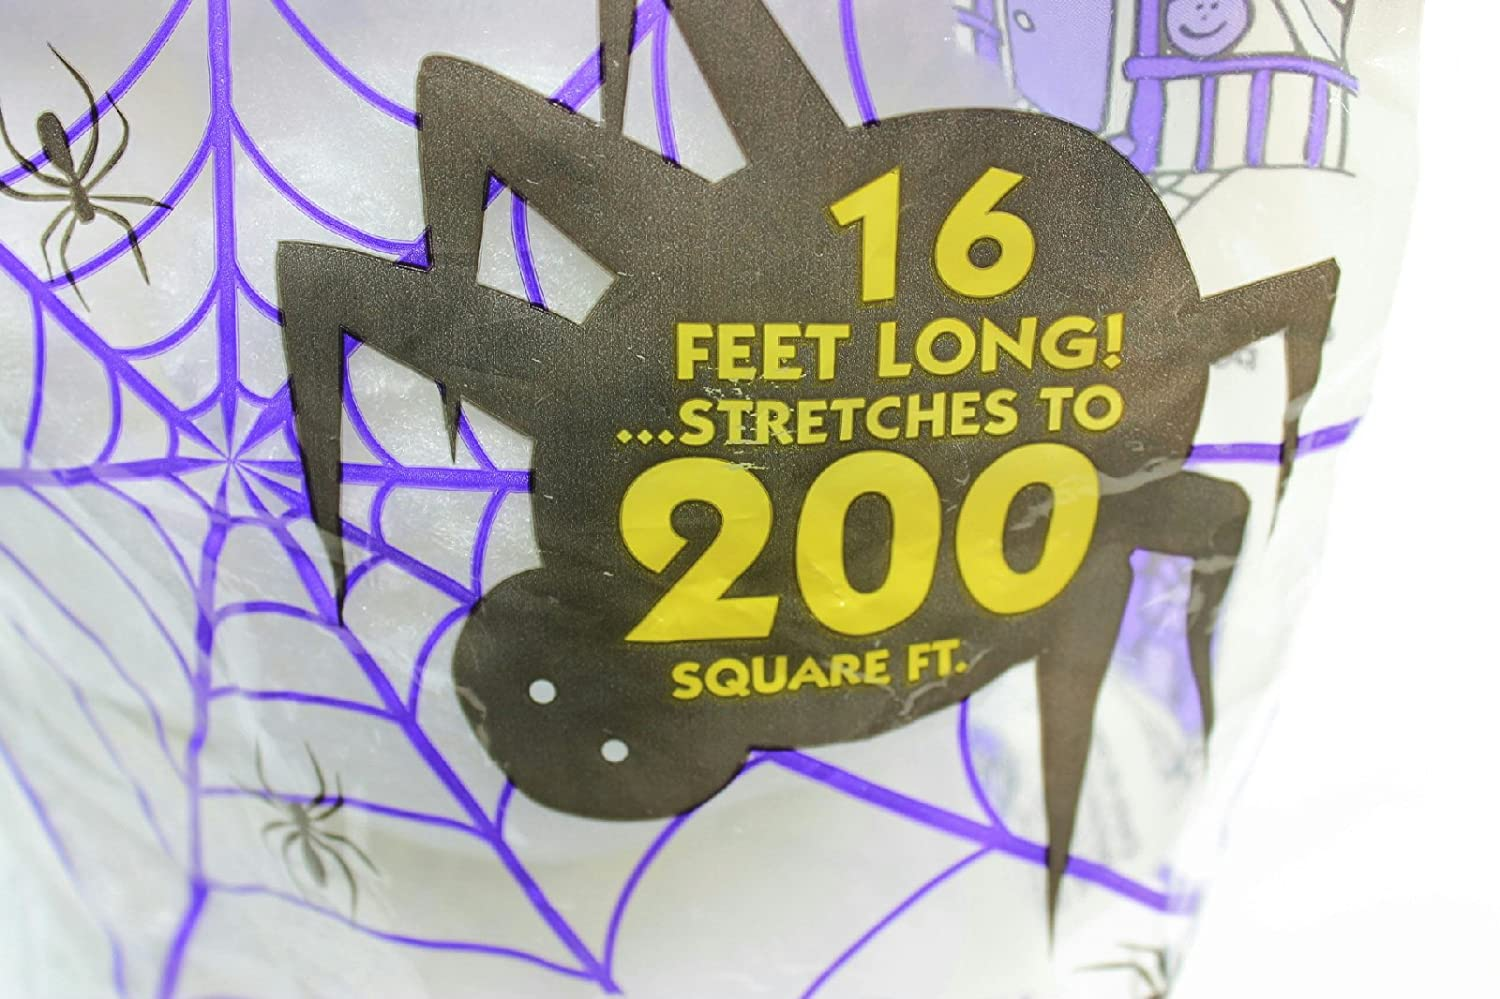 Pack of 2 White 16 ft Long Super Stretch Scary Spider Web Halloween Decoration